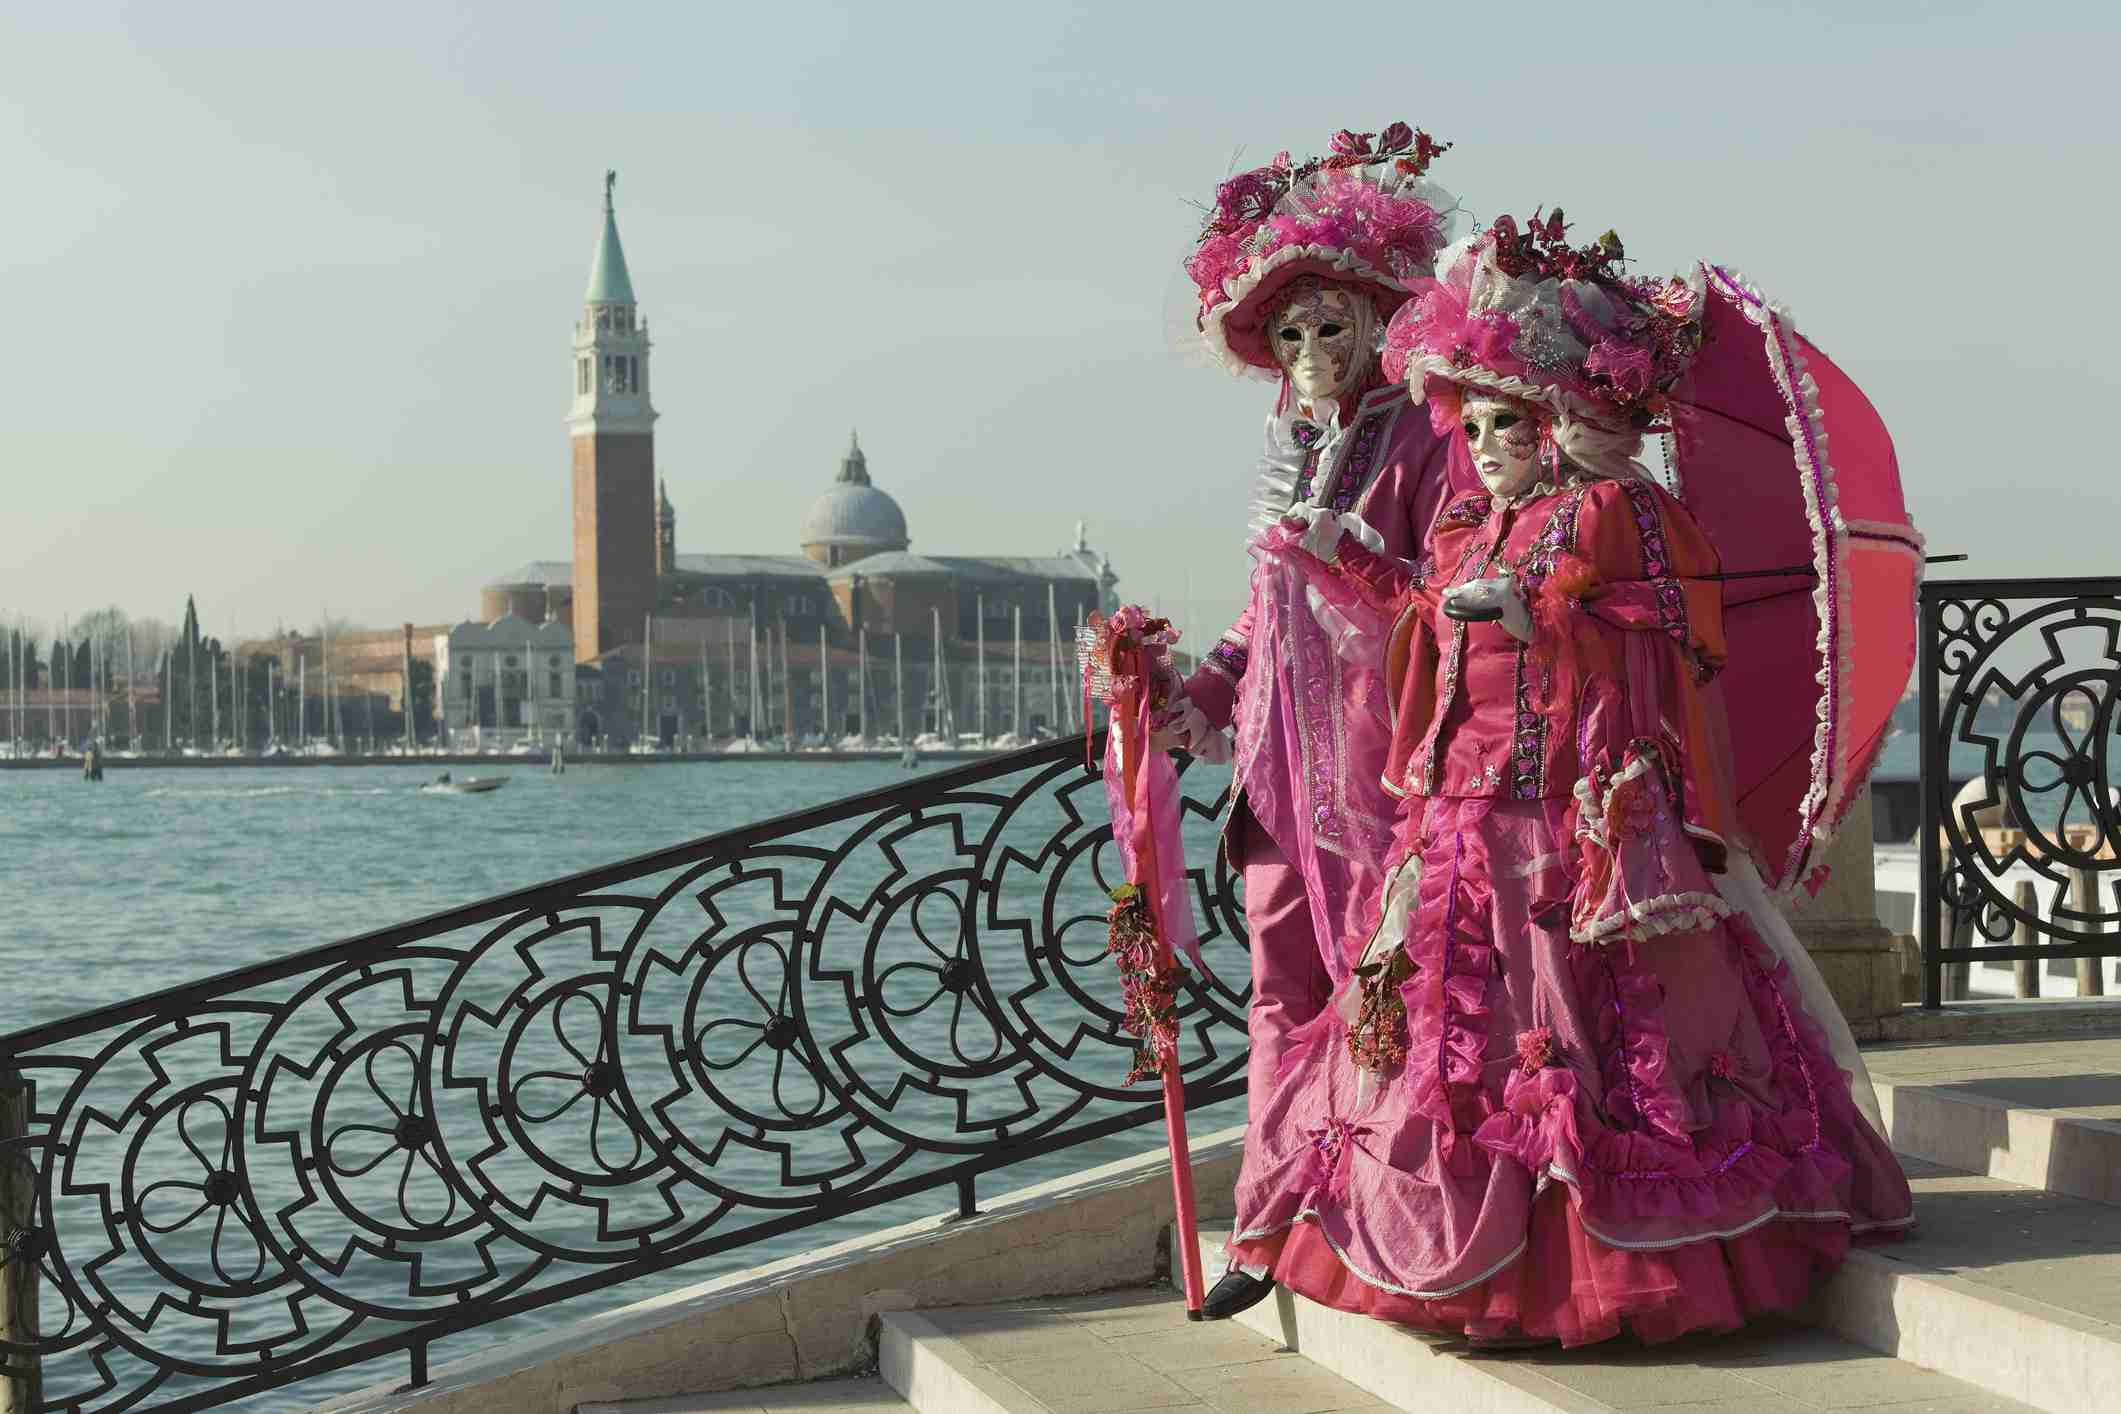 Carnevale Traditions and Festivals in Italy